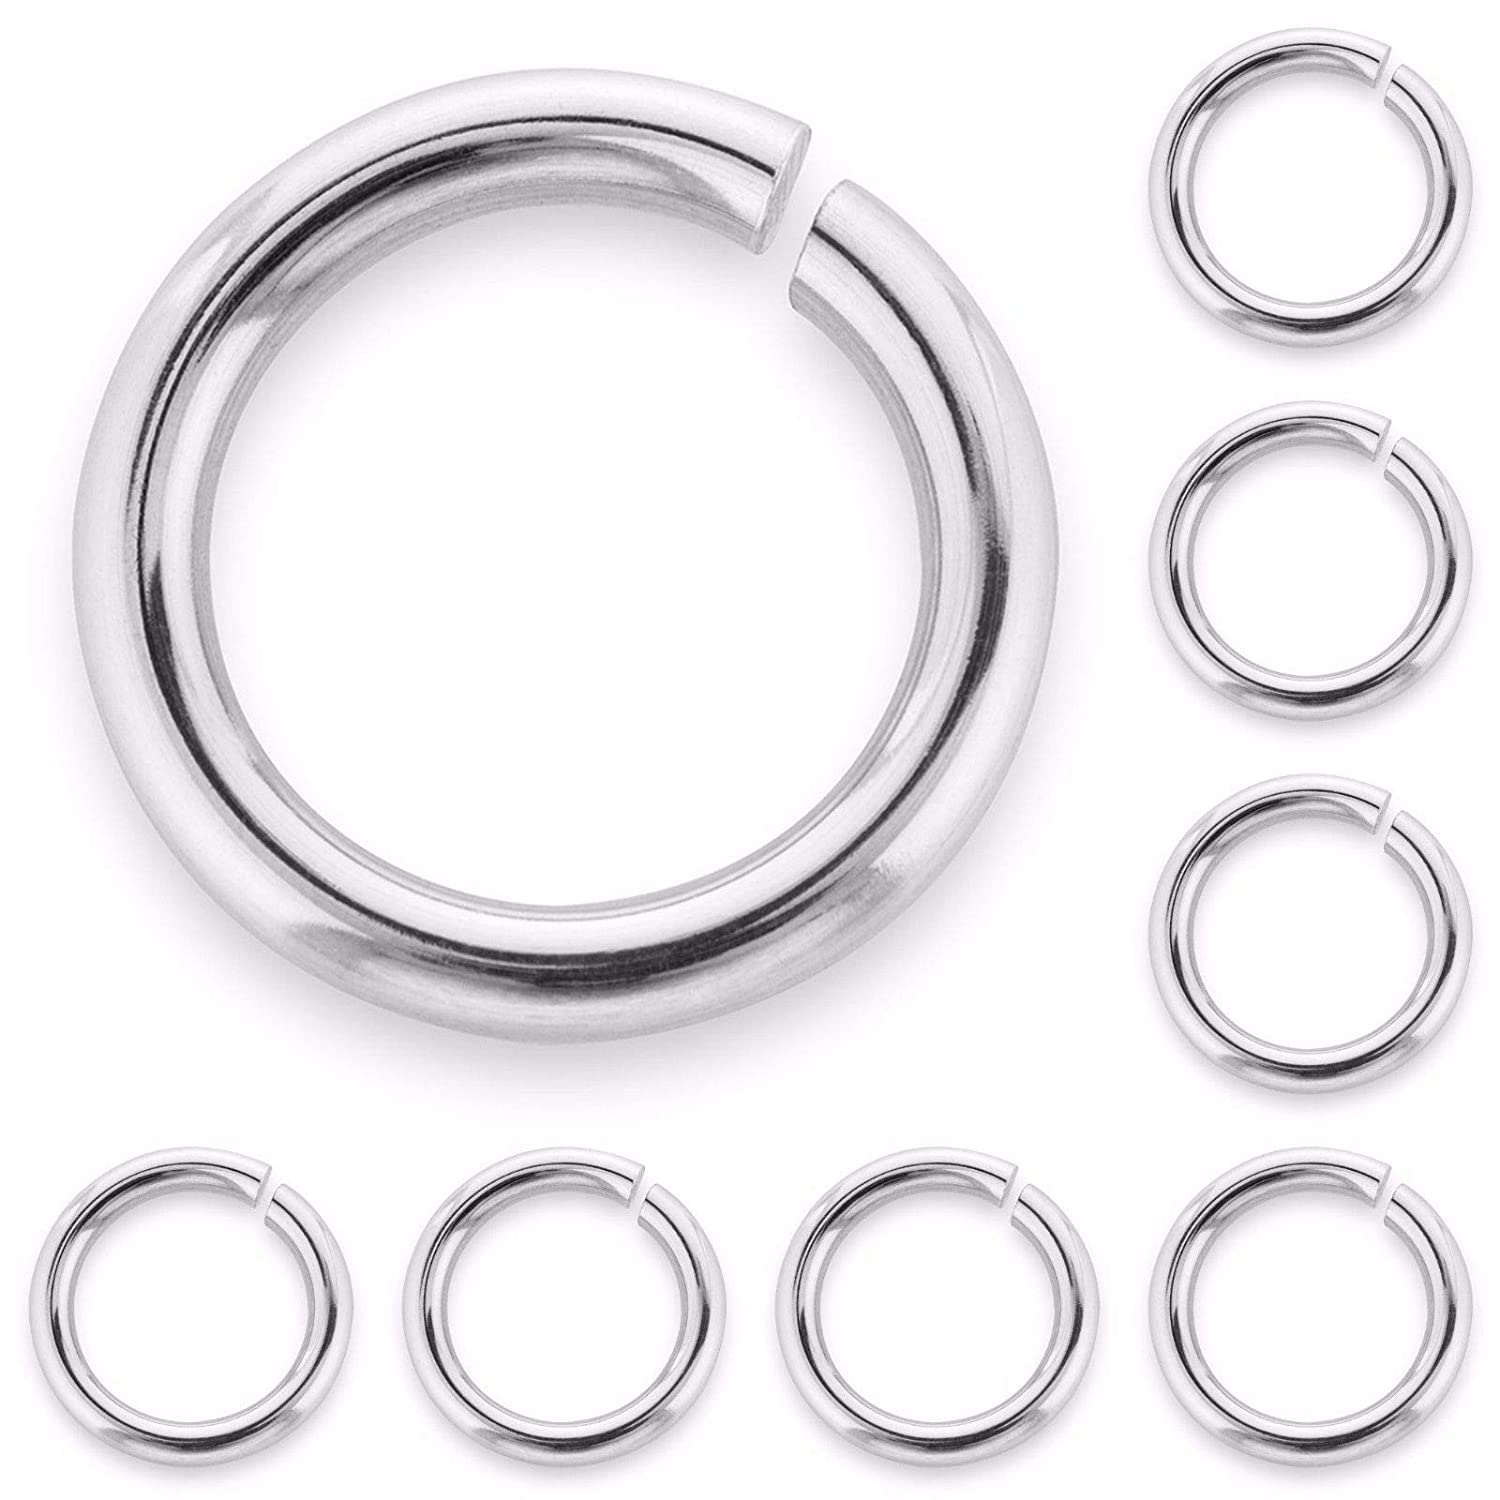 10 x Solid Sterling Silver Jump Rings - Open 5mm Good Quality Heavy Strong na